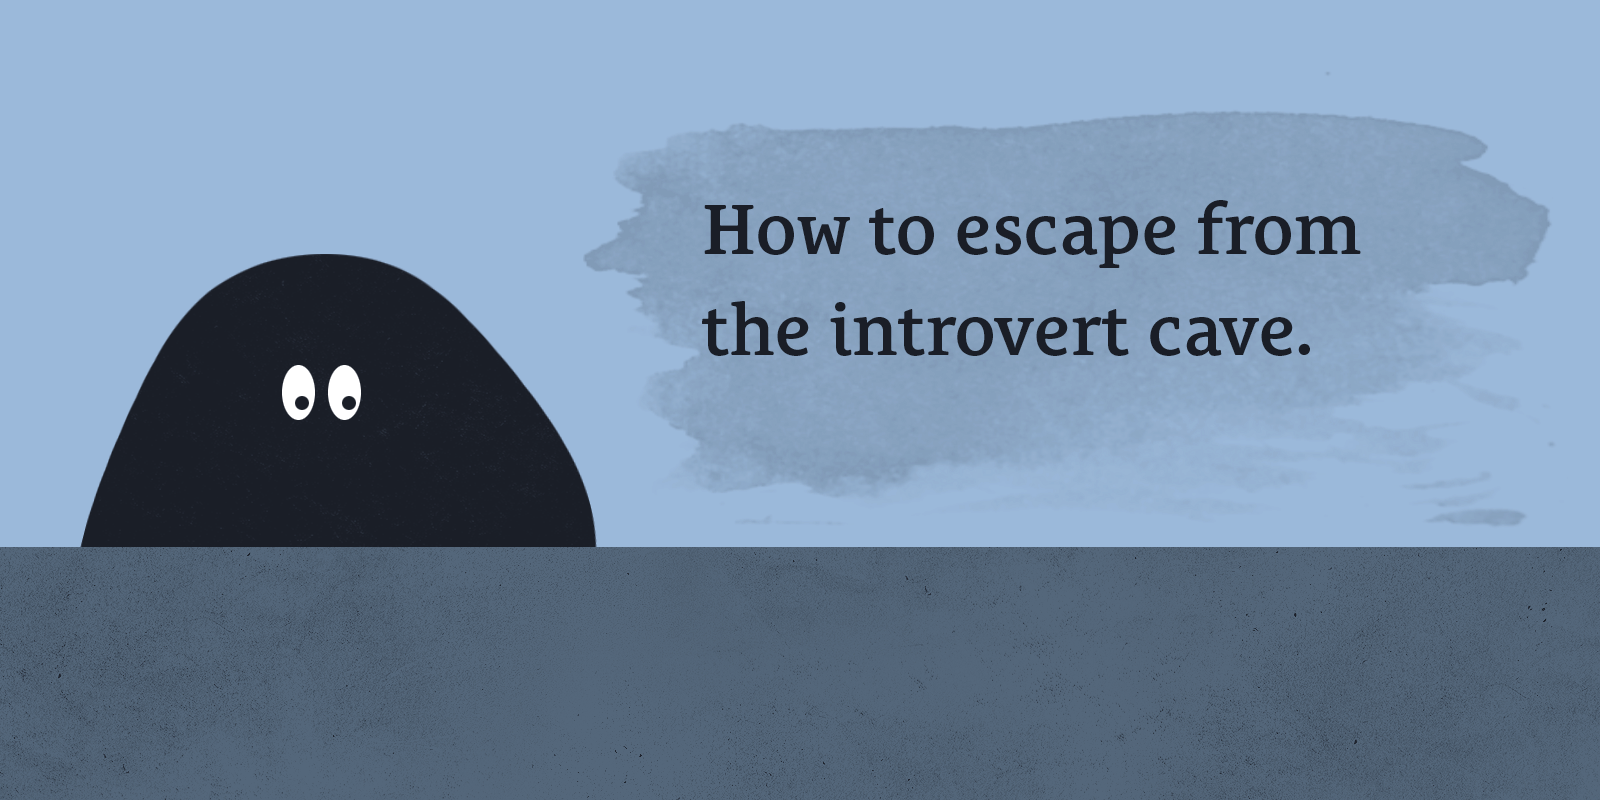 How to Escape From the Introvert Cave